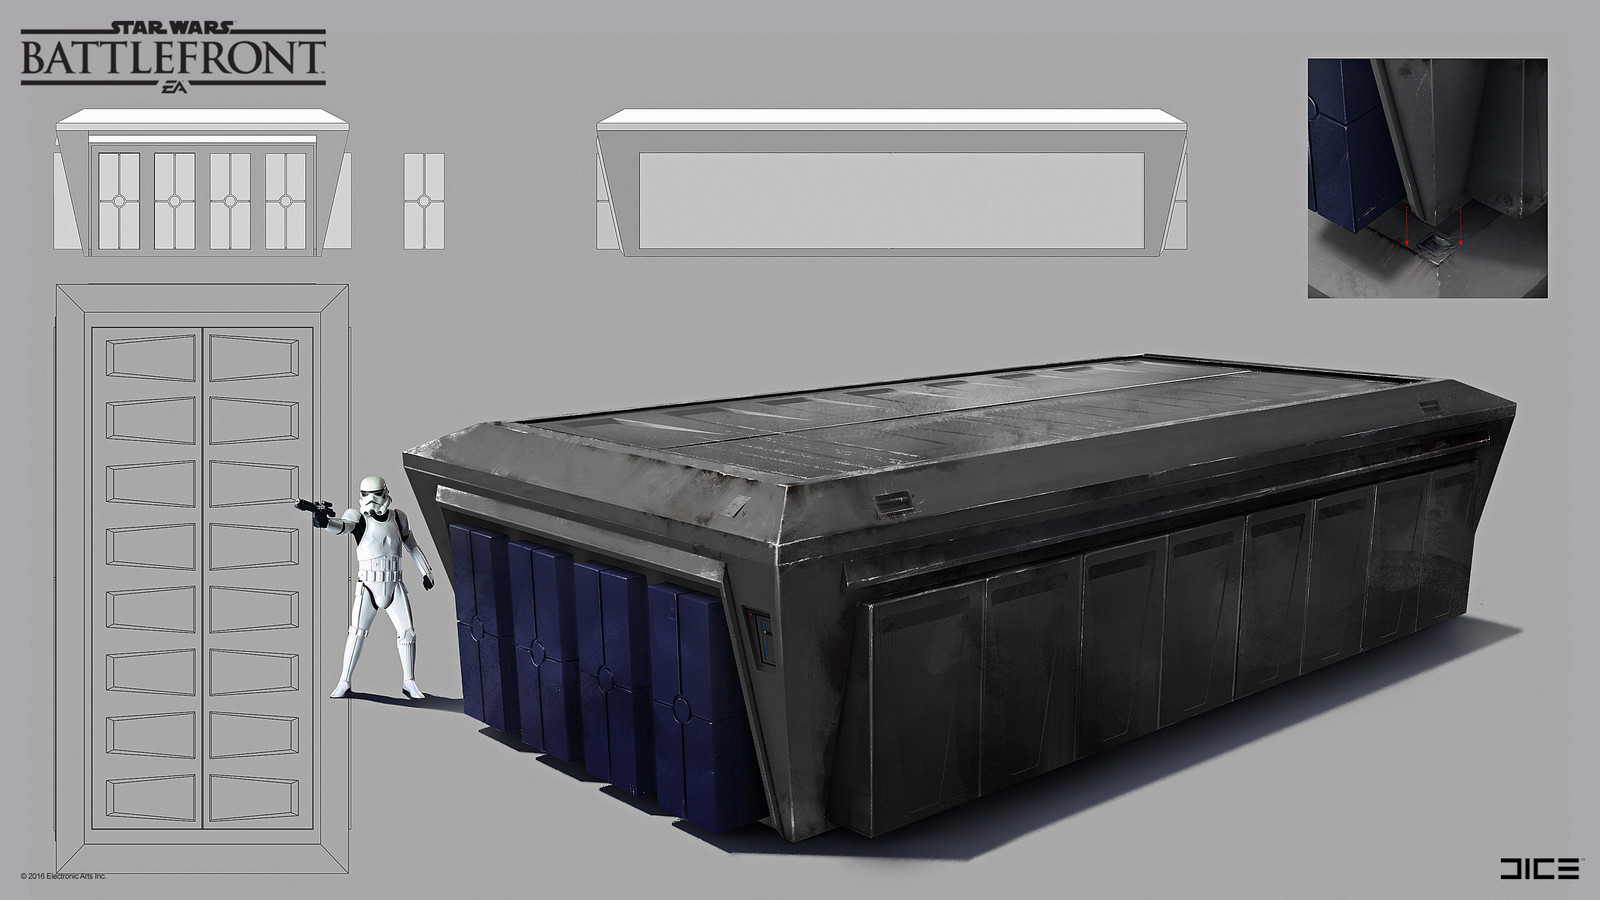 Imperial container on Sullust Concept Art t for the 2015 Star Wars Battlefront game. (2014)